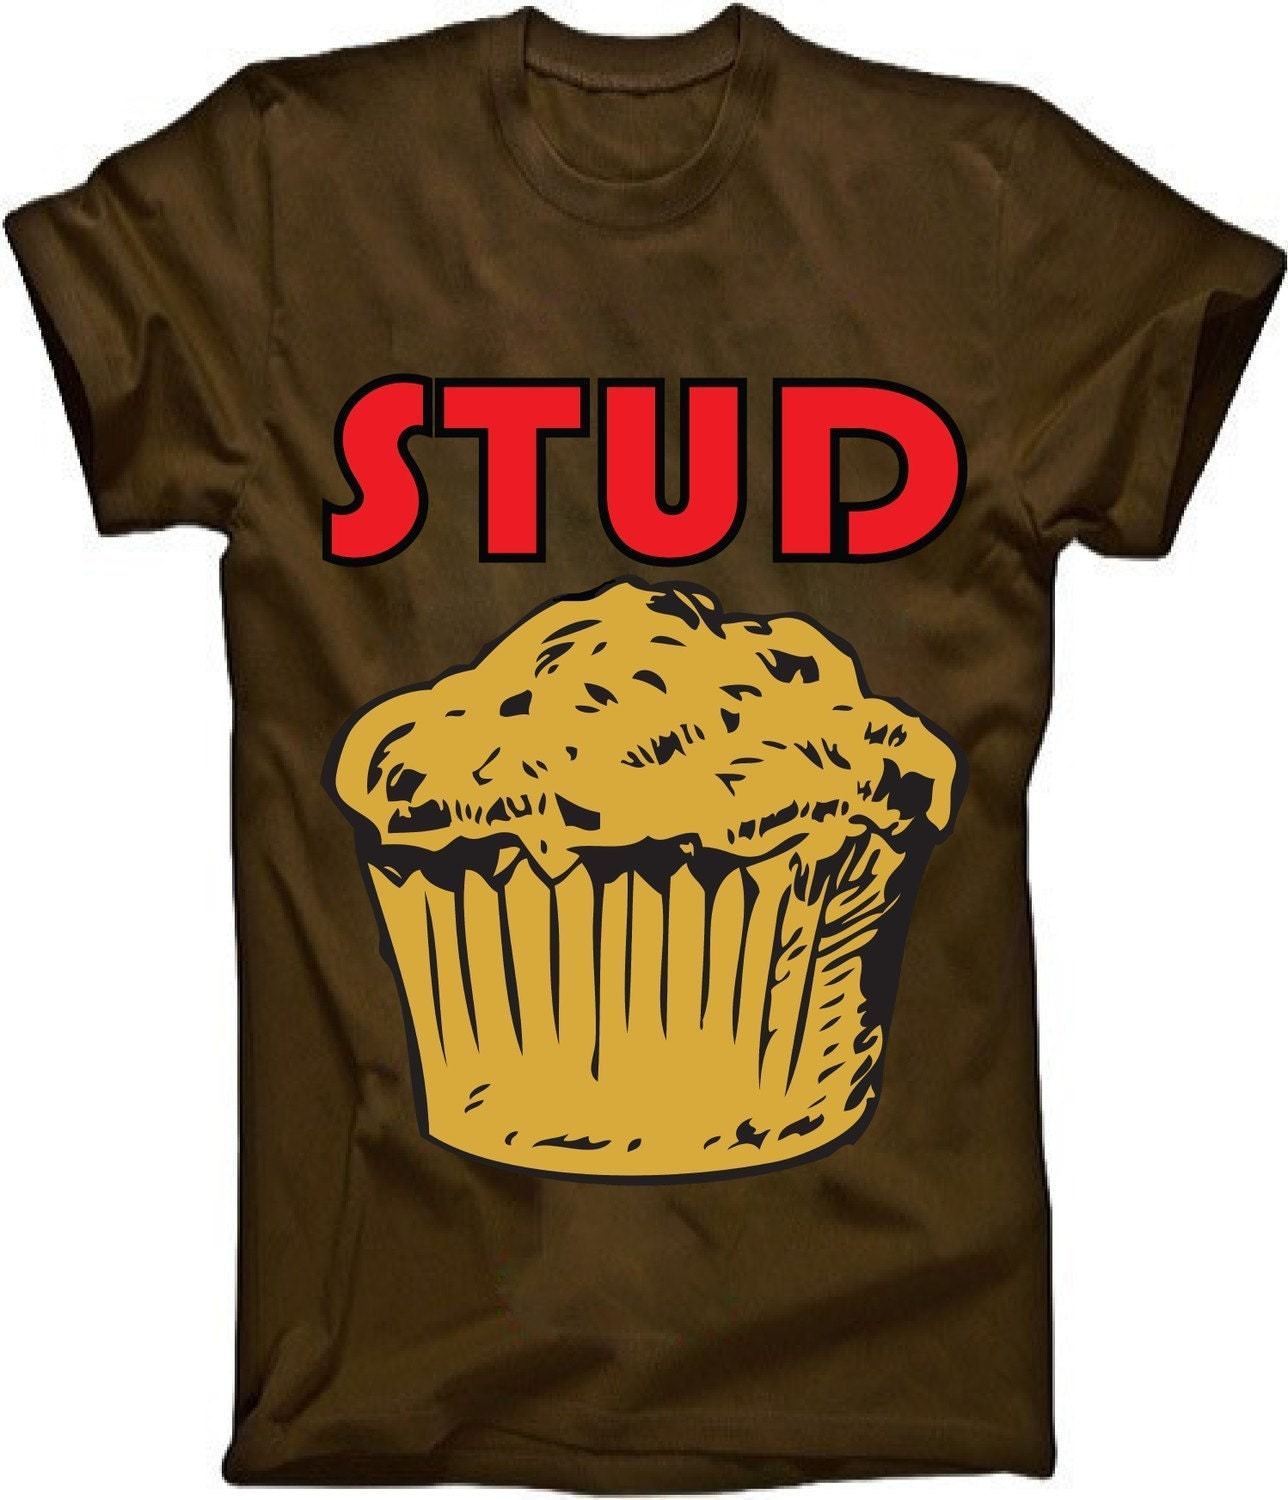 Stud Muffin on Brown Tshirt